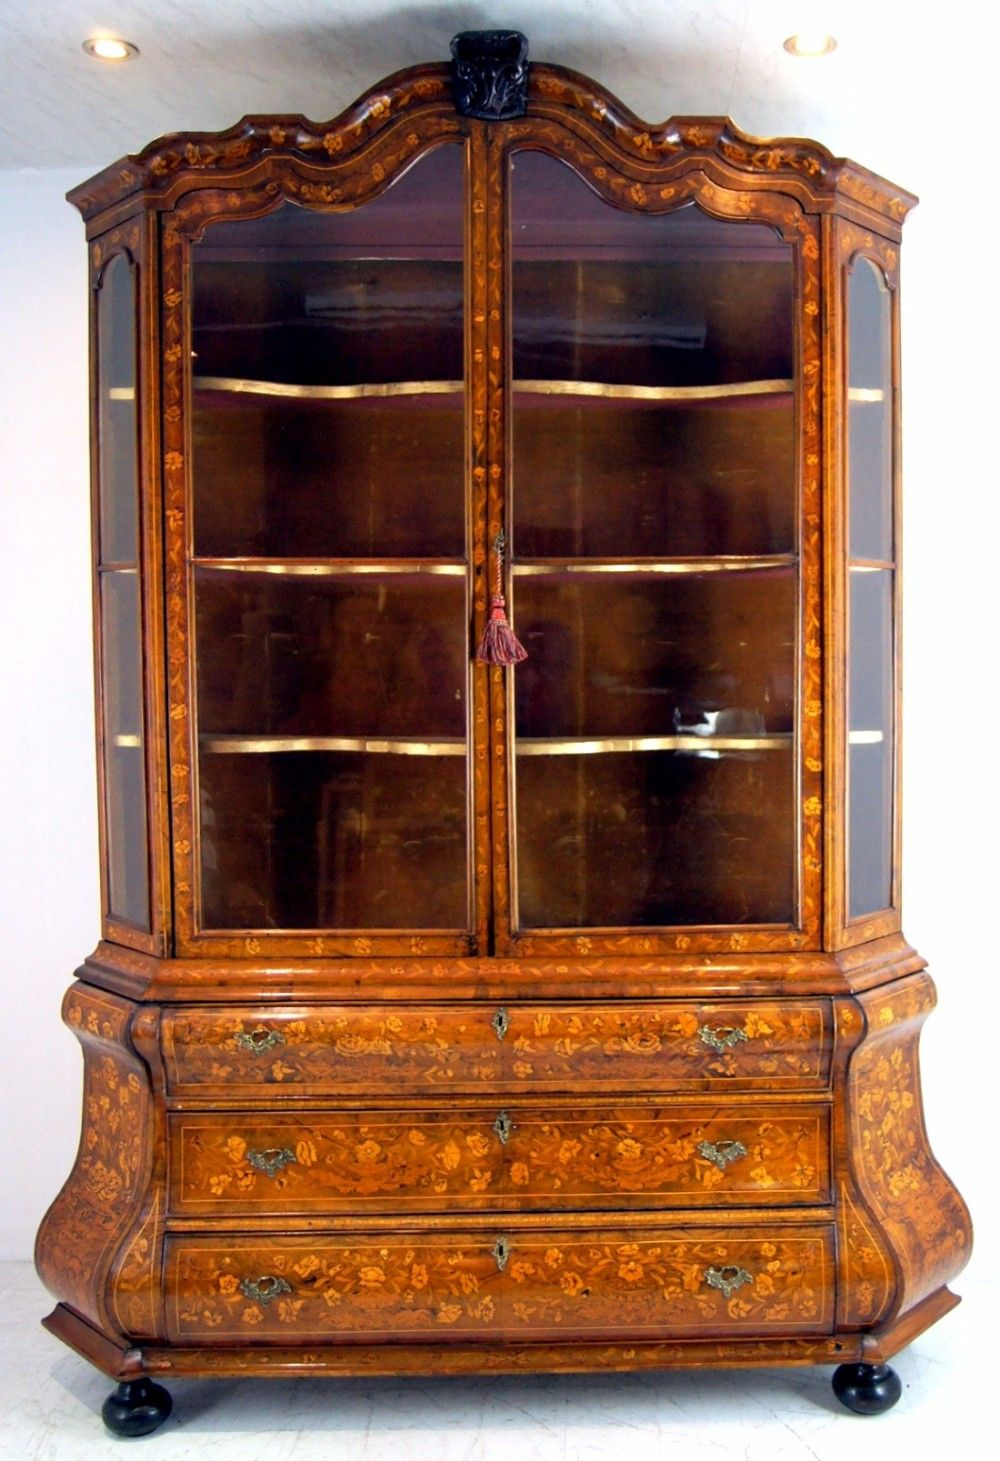 A Breathtaking Late 18th Century Dutch Walnut Marquetry Display Cabinet On Chest